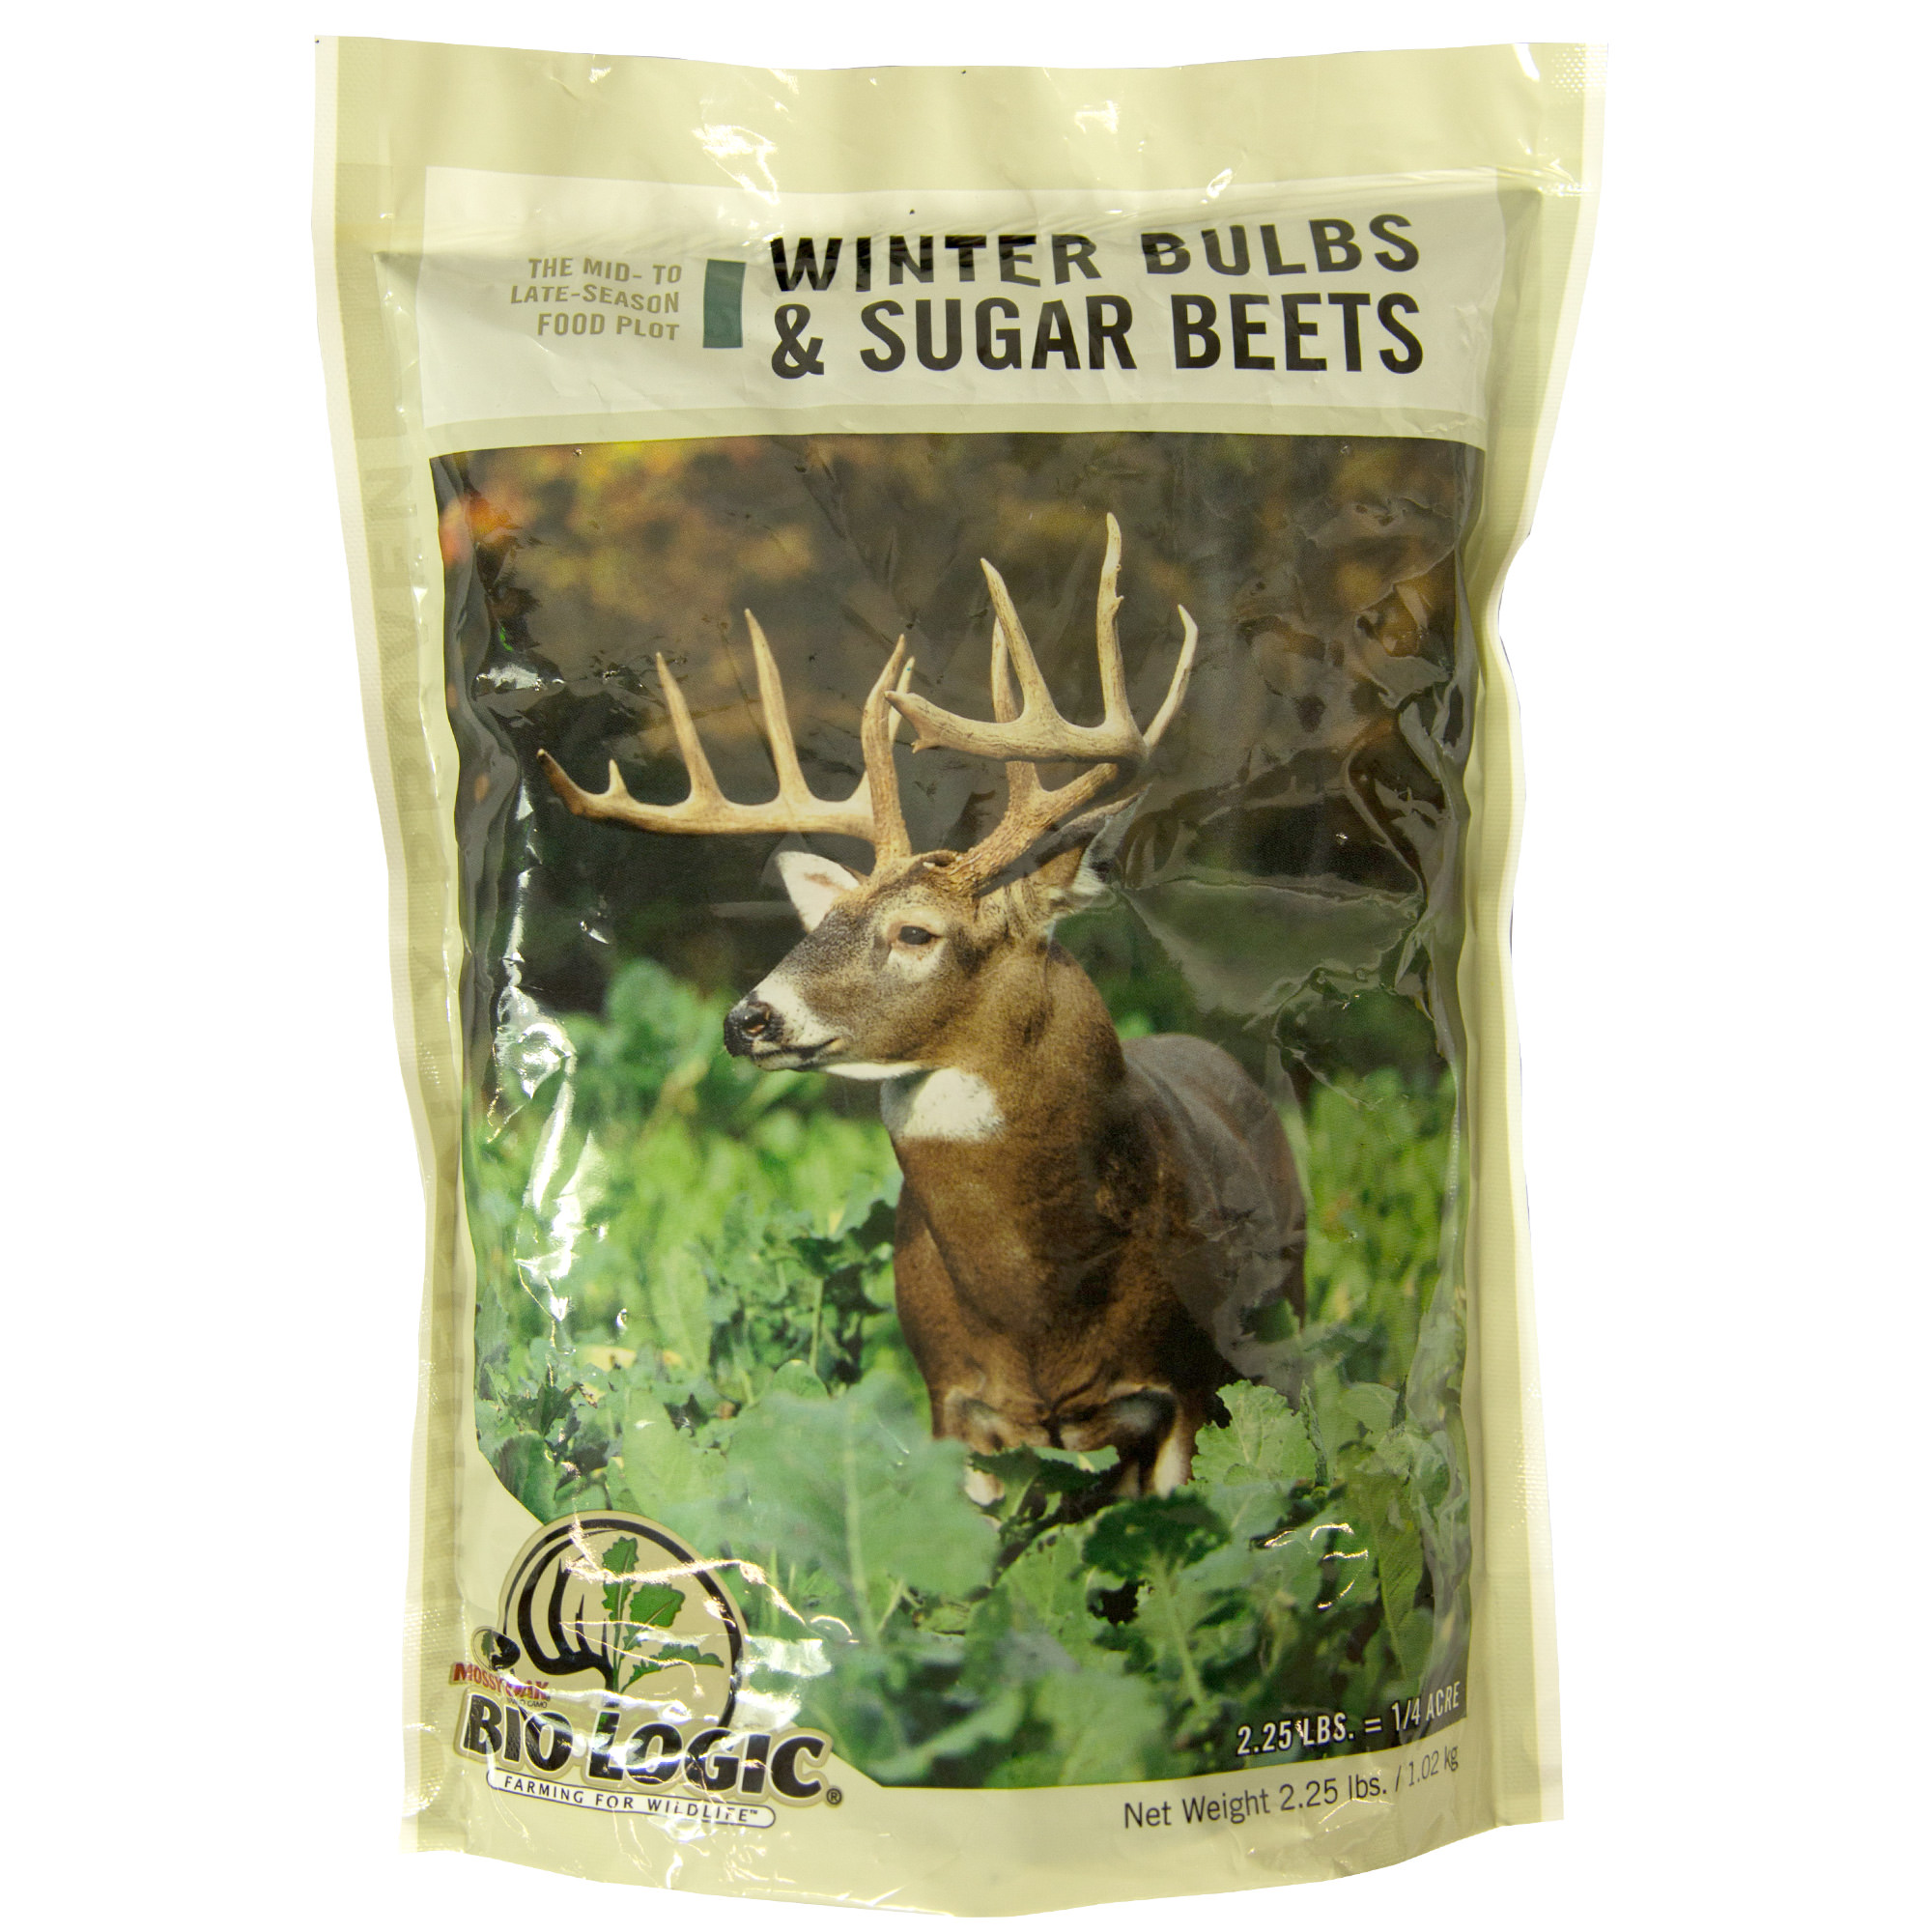 Mossy Oak BioLogic Winter Bulbs Late Season Food Plot Seed for Deer